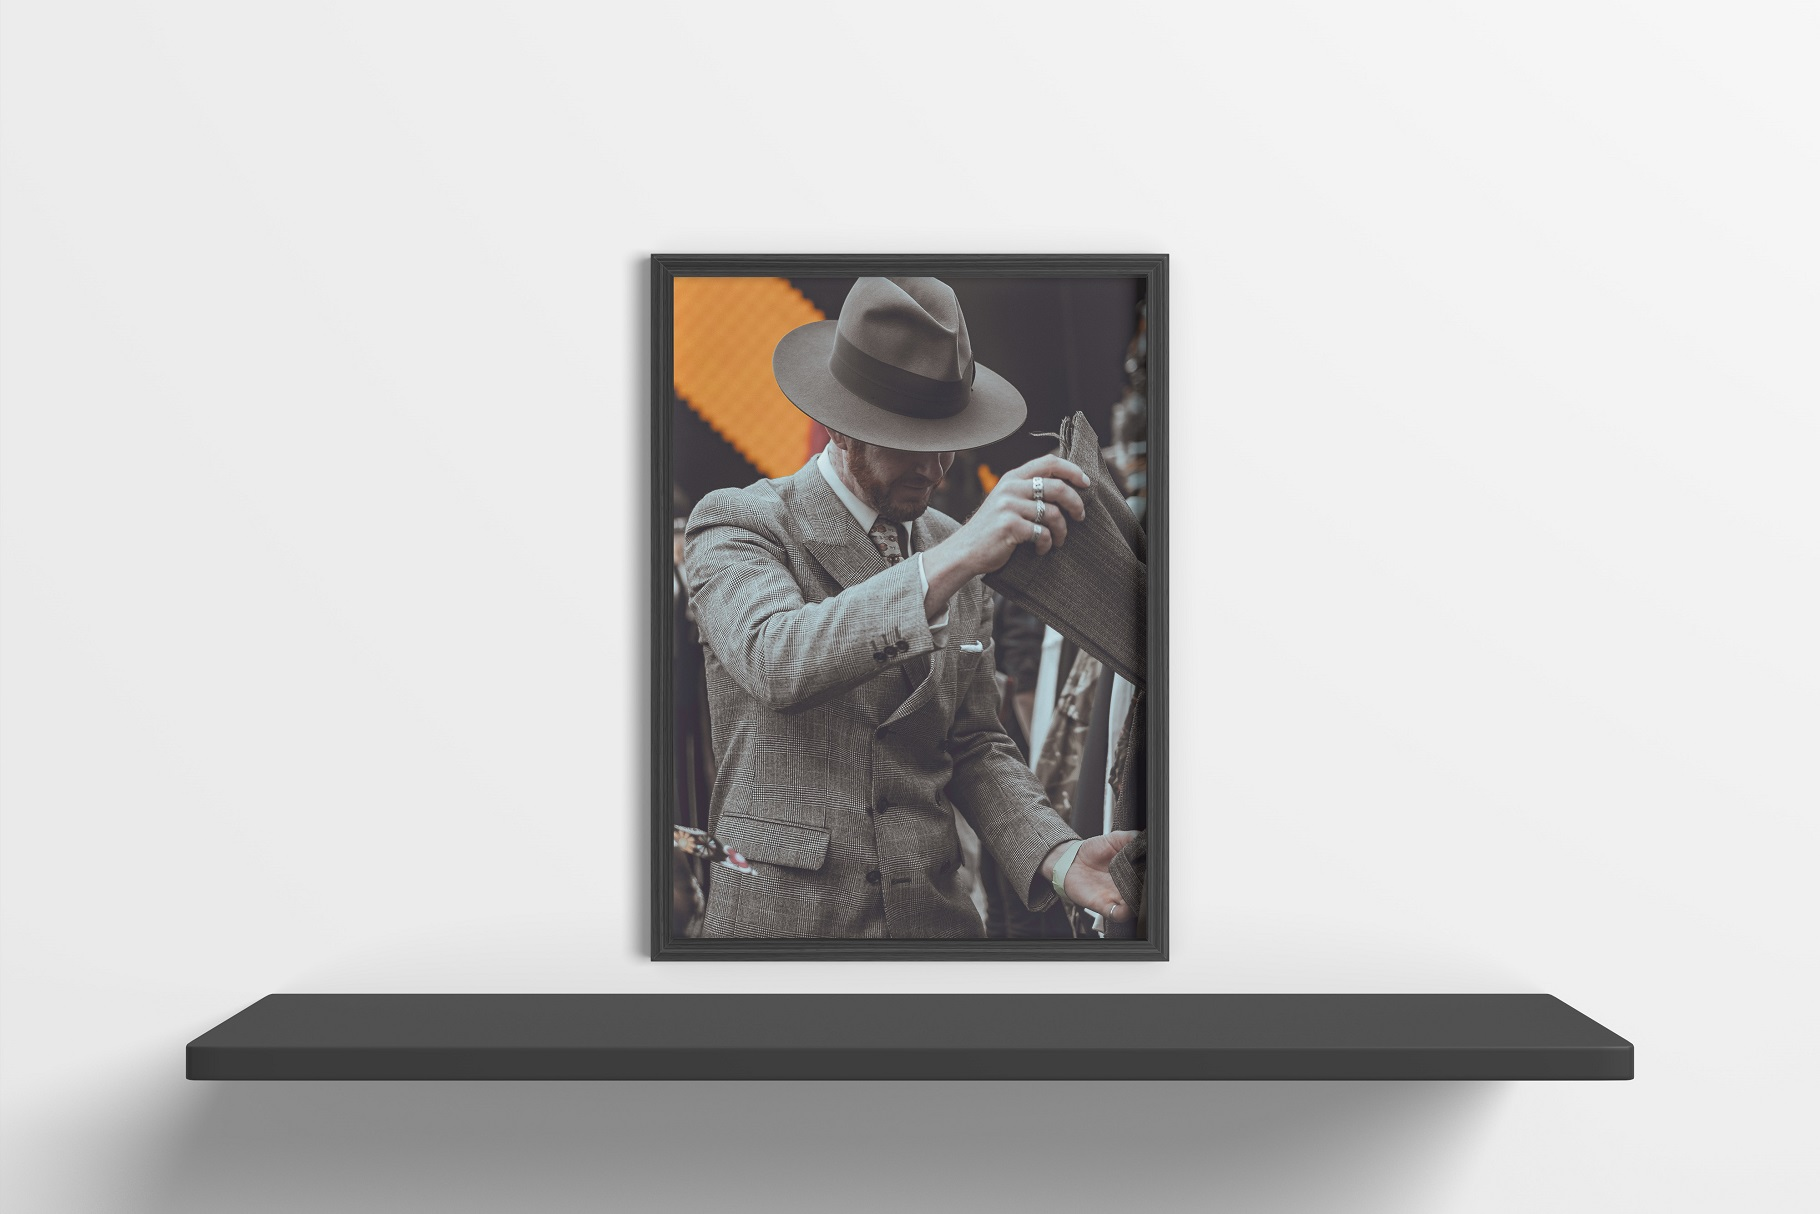 5x7 Inches Photo Frames Mockups example image 2